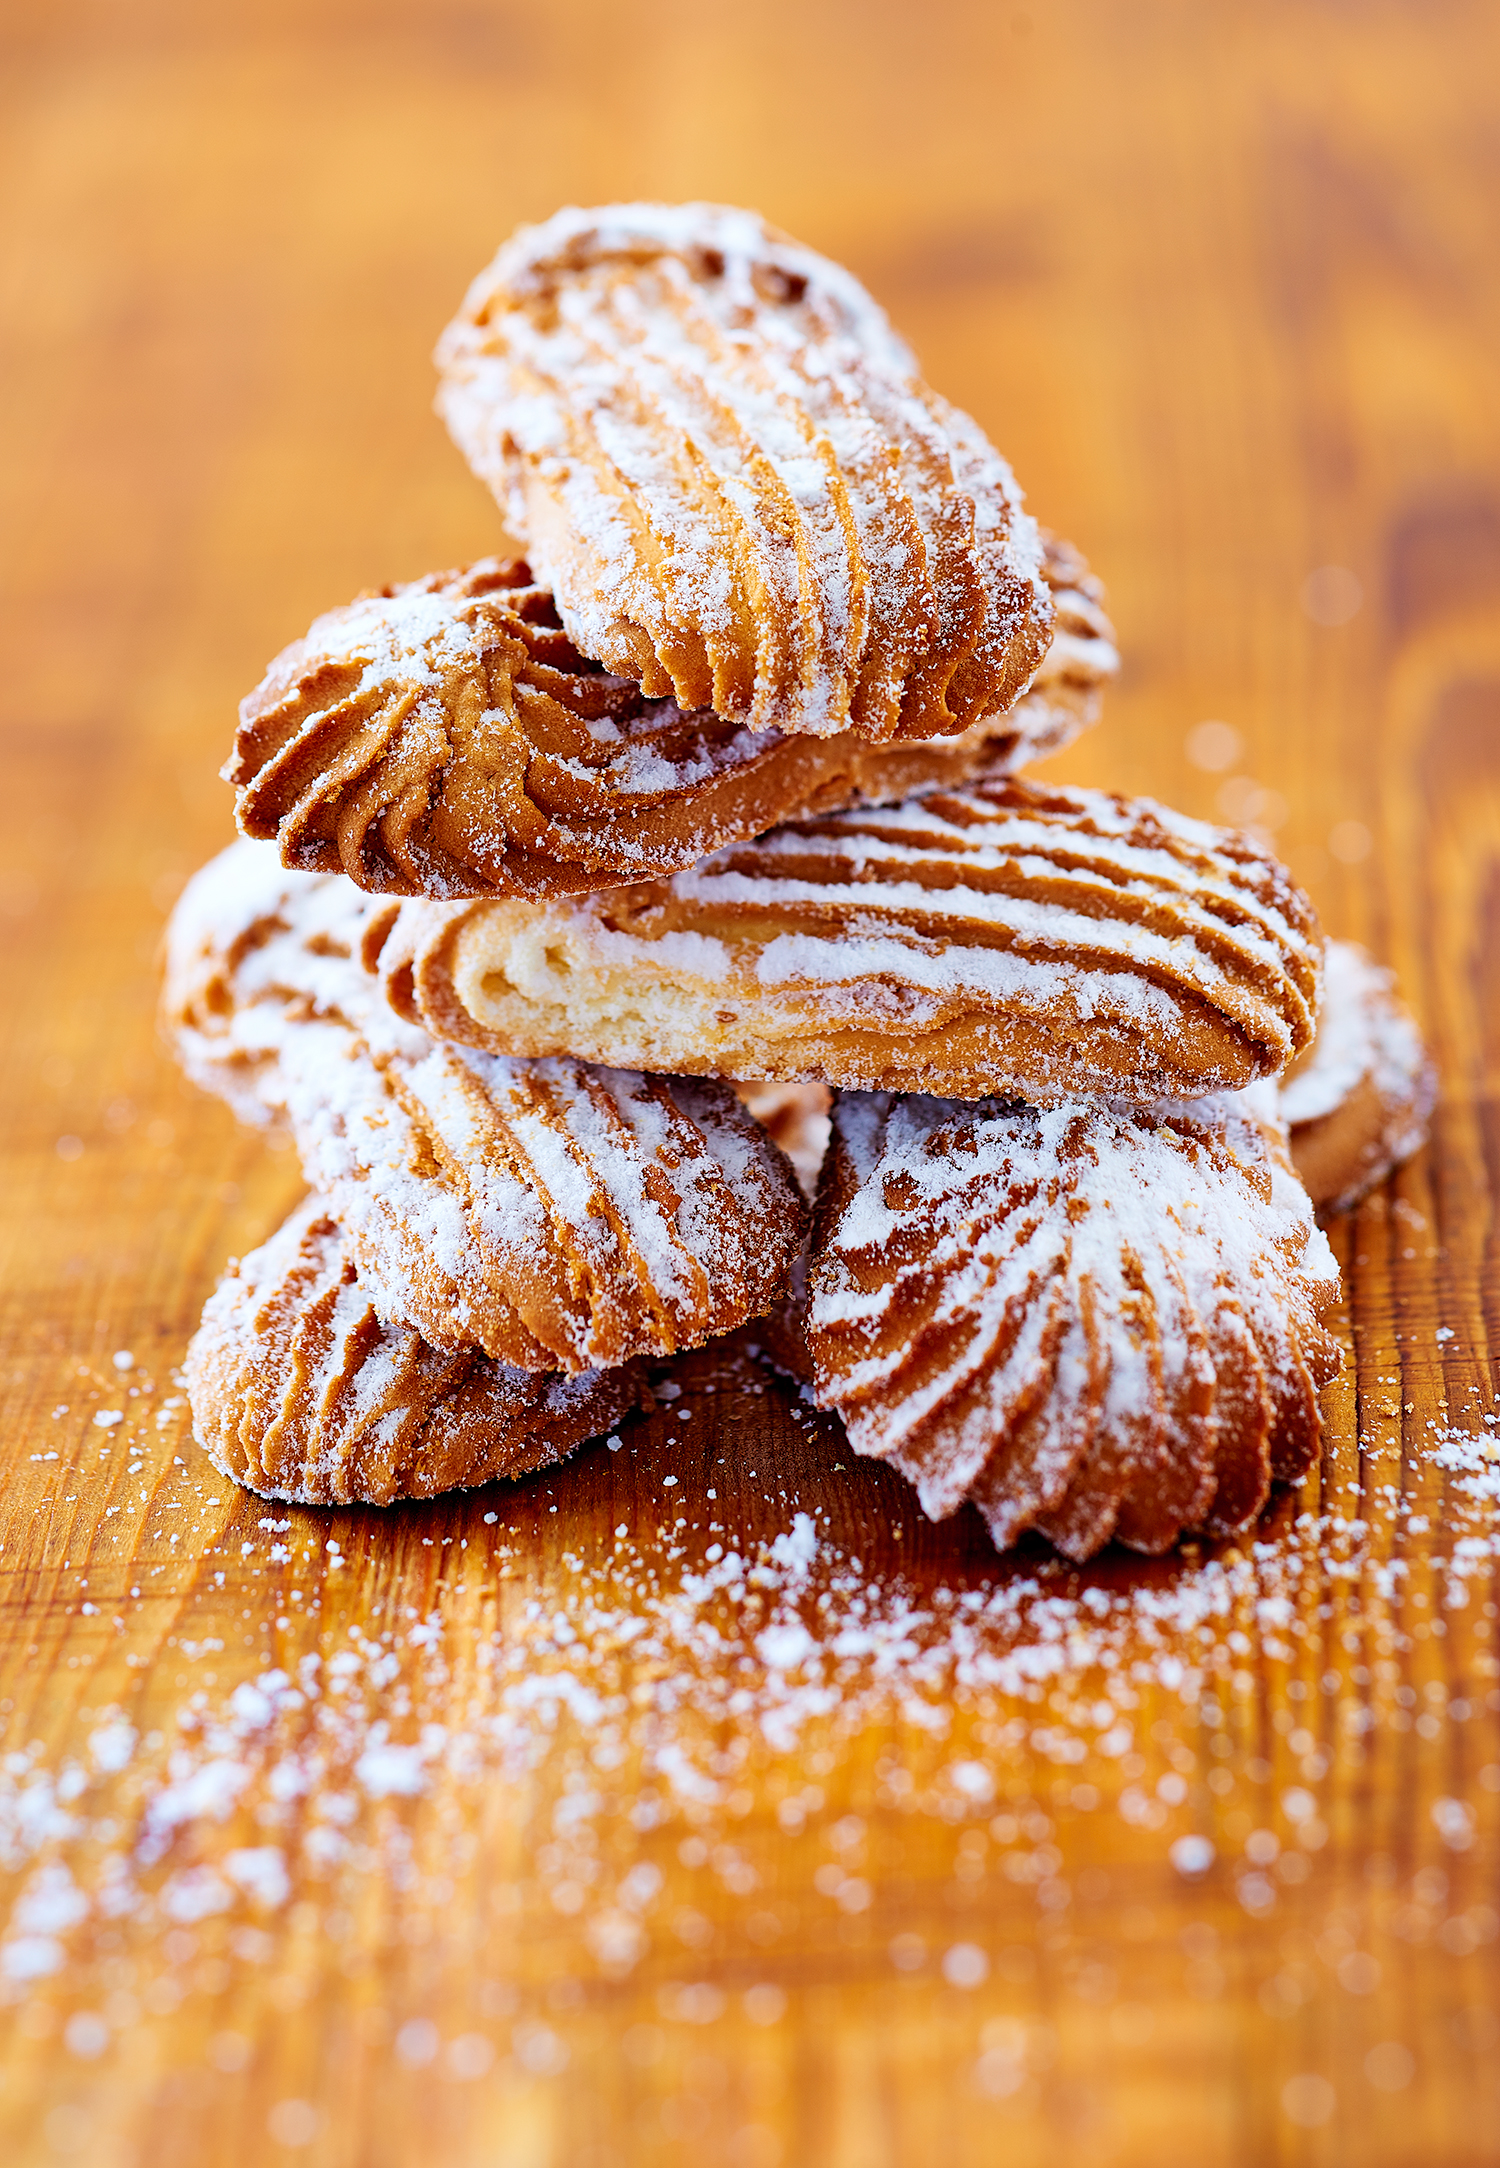 12_French-almond-cookies-madelines_0164_original.jpg